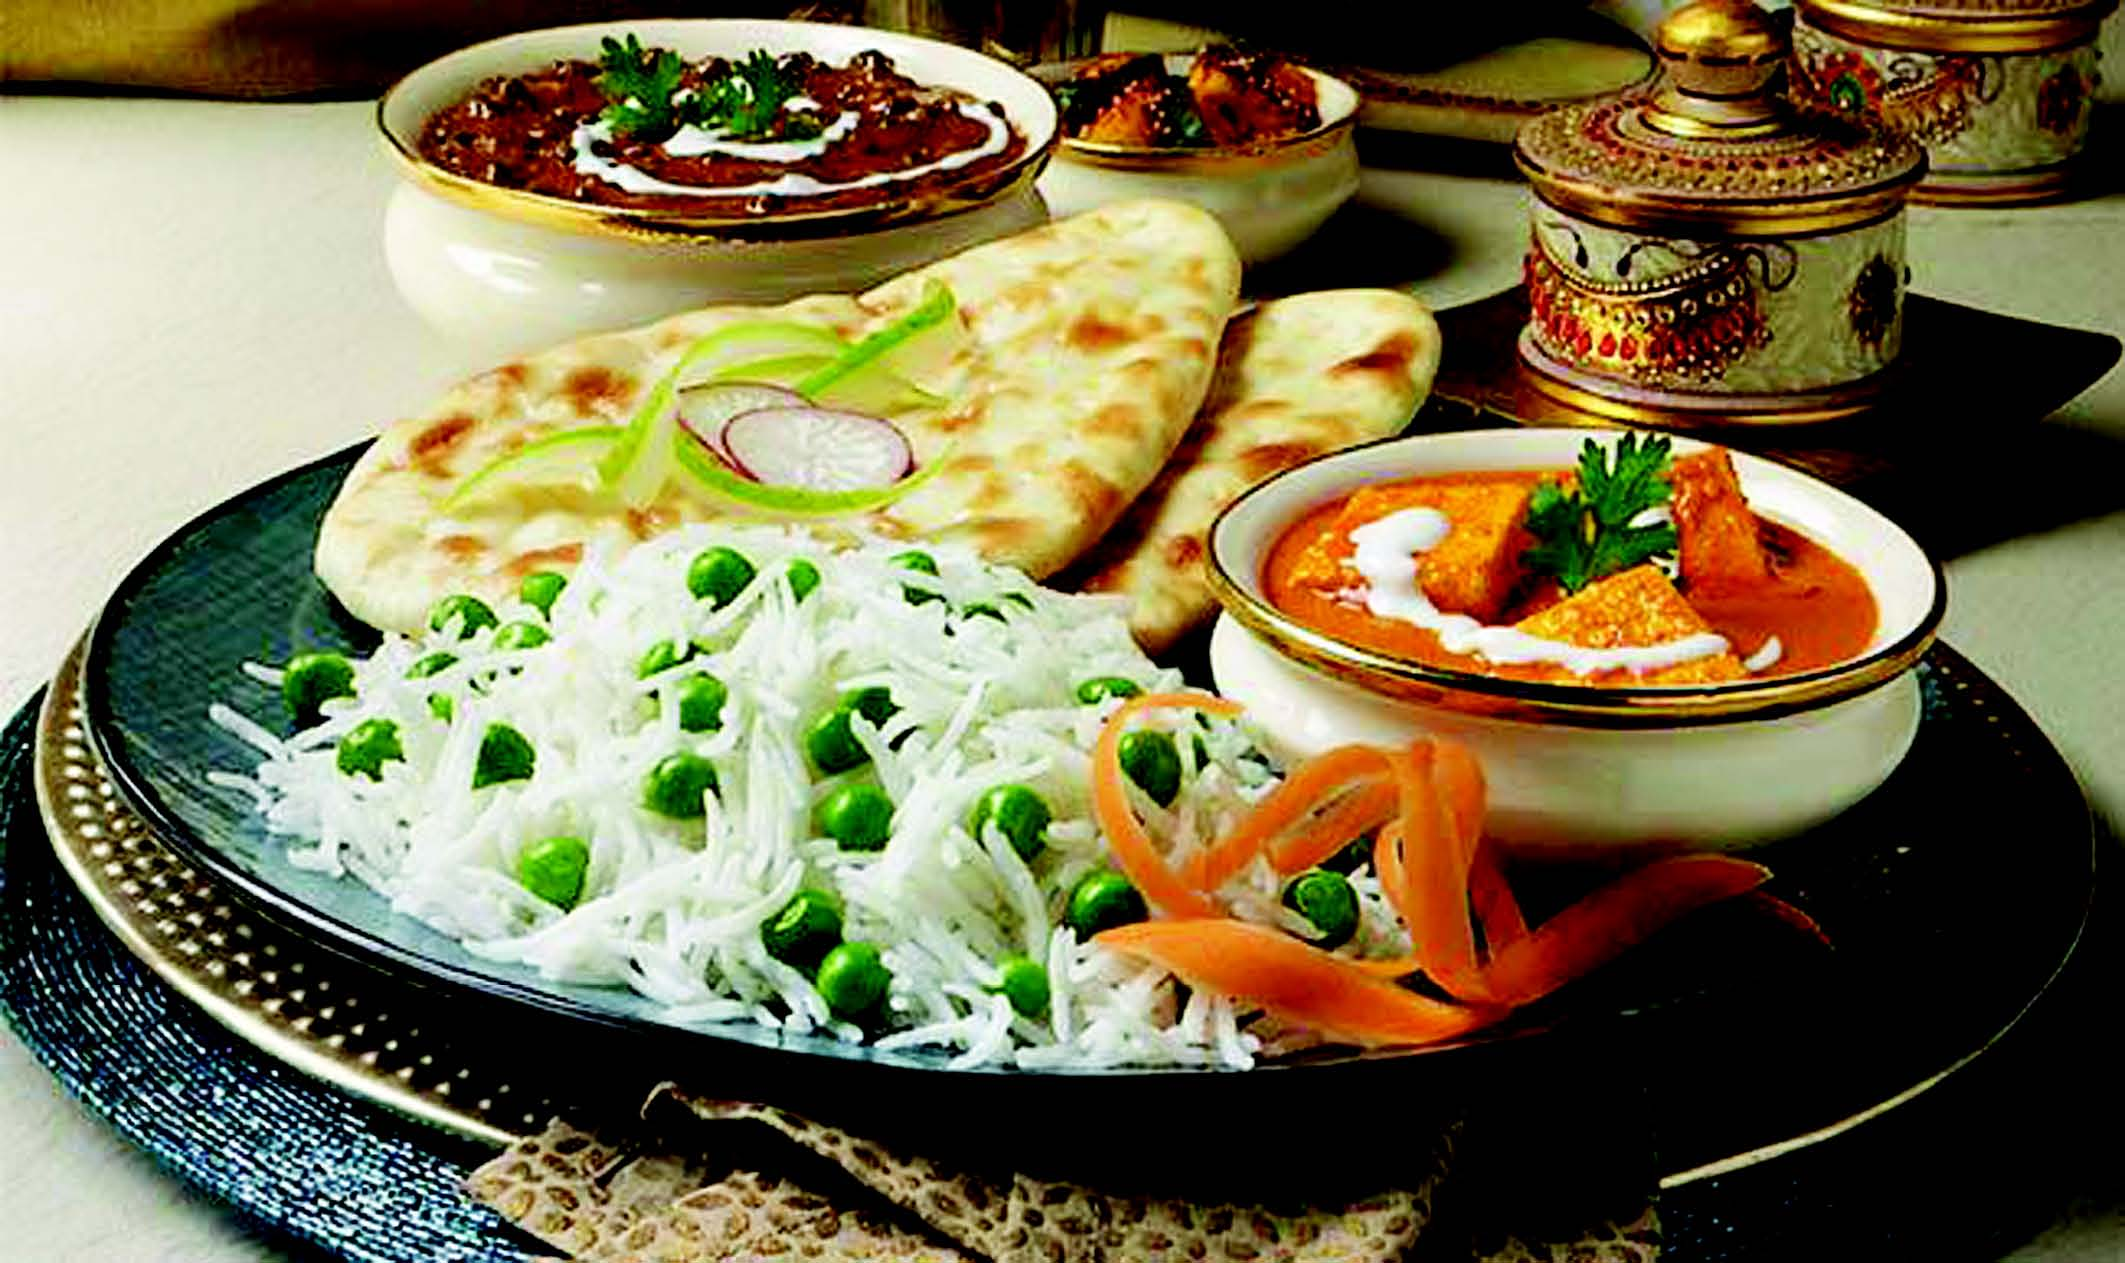 Cuisine India Hospitality Biz India Indian Cuisine Is The Most Challenging